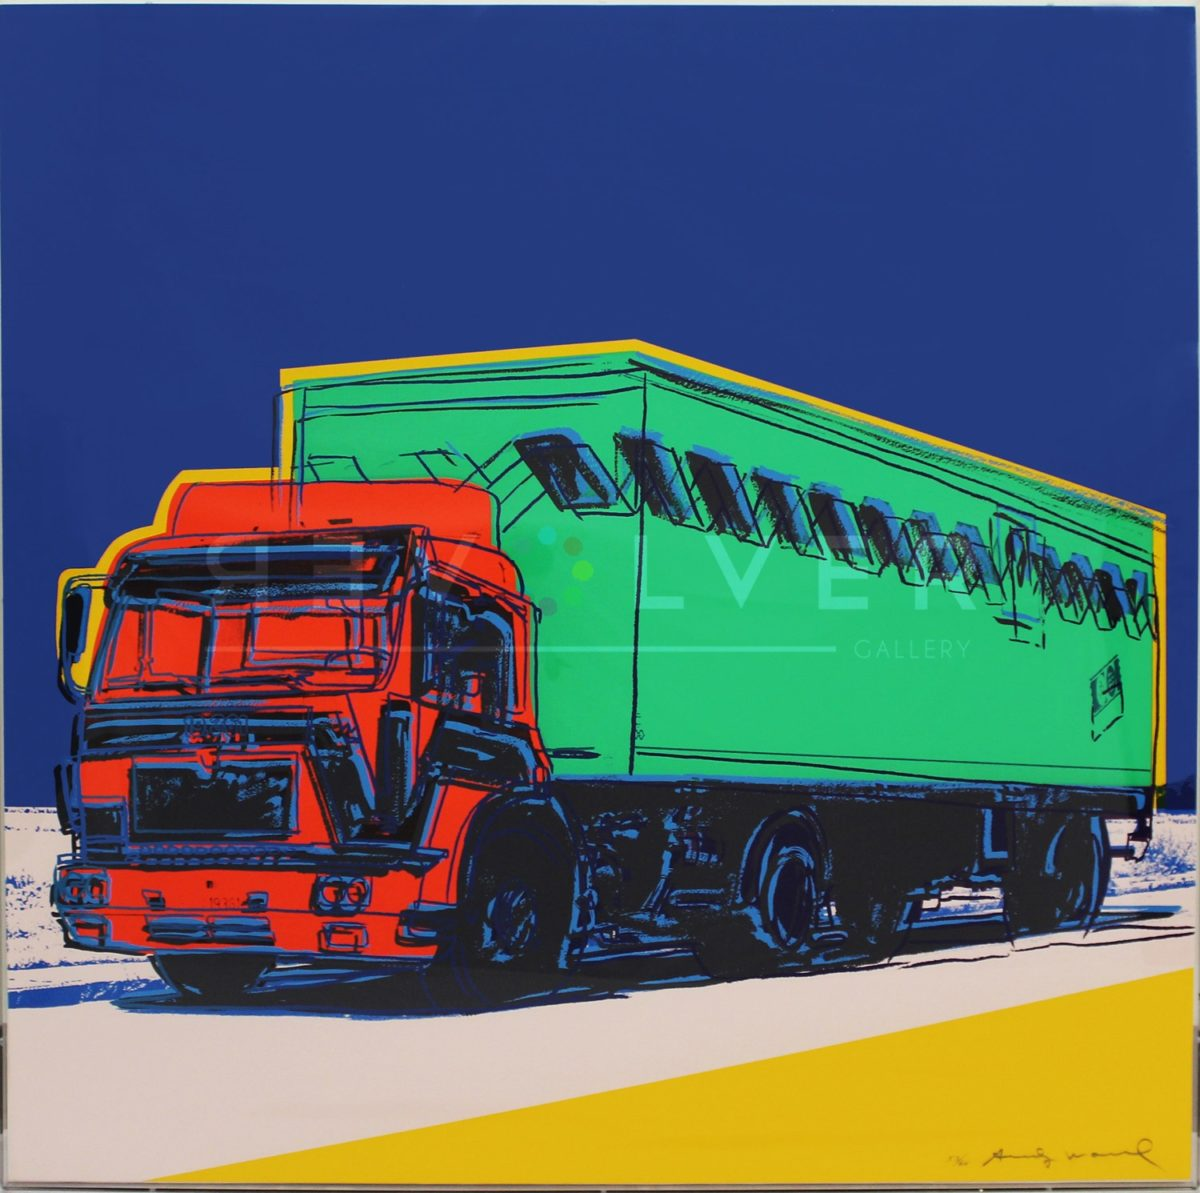 Andy Warhol Truck 368 screenprint. Basic stock image with the revolver gallery watermark.